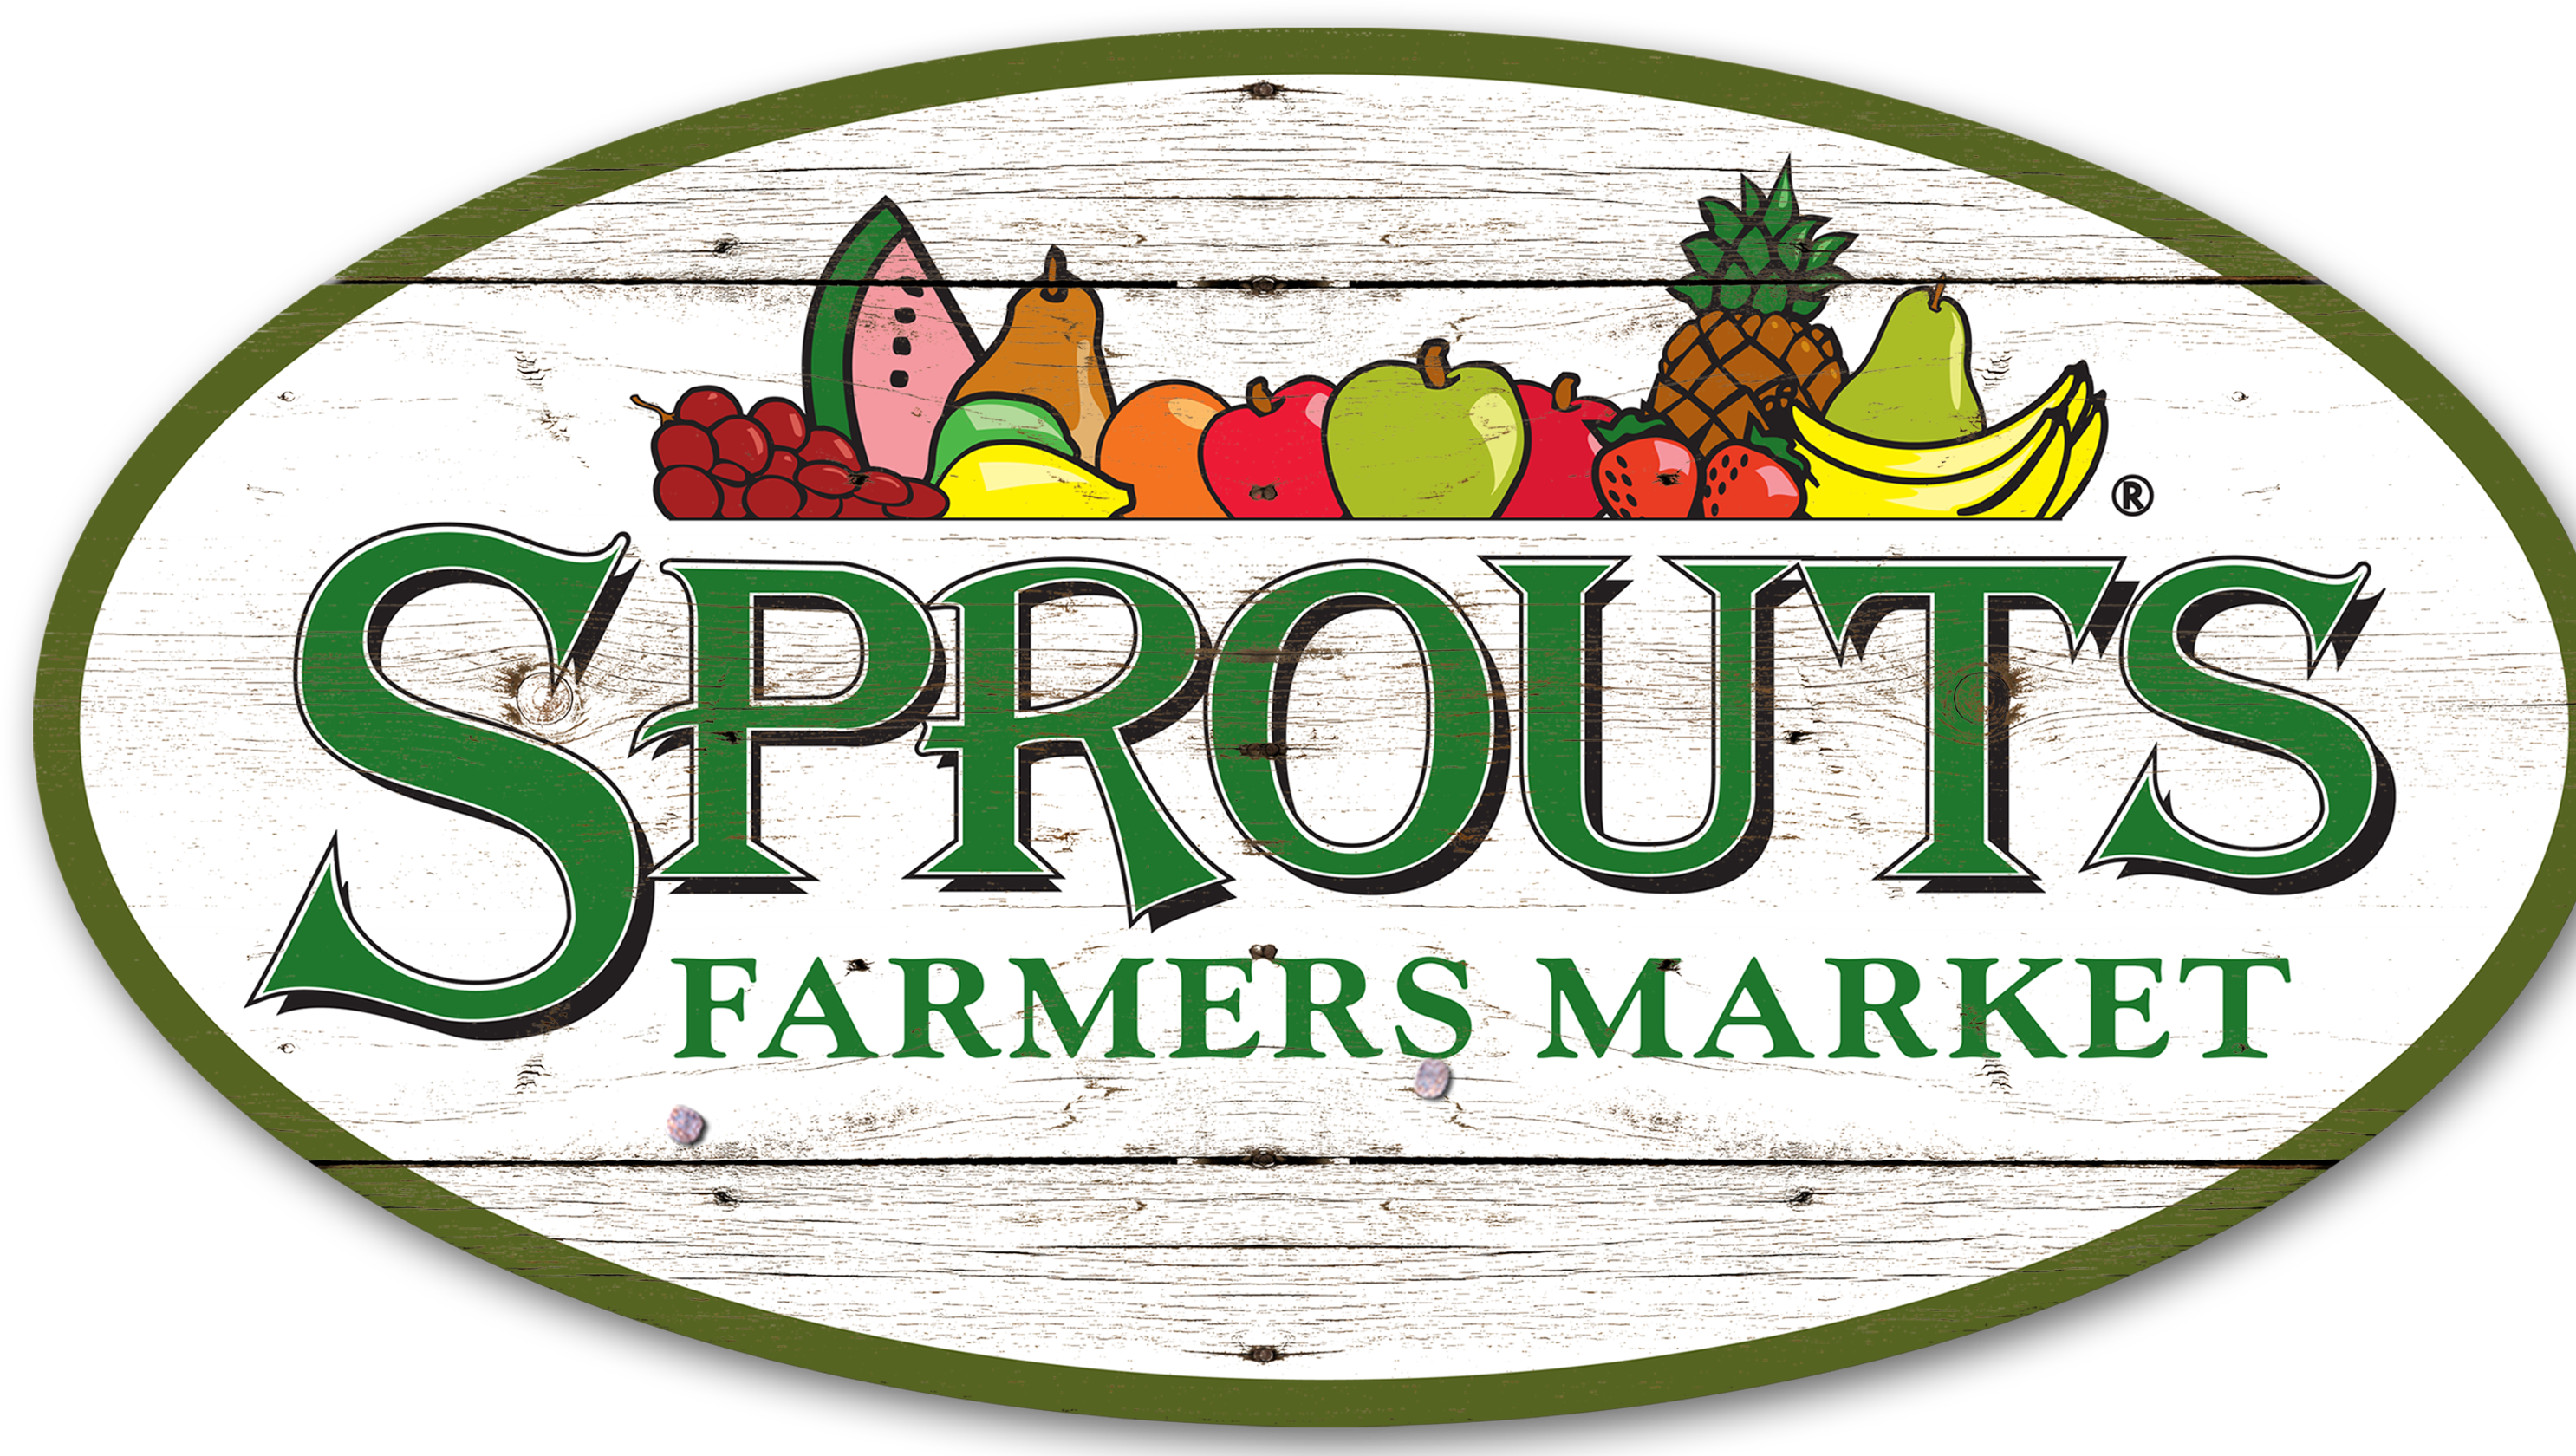 Grocer will conduct walk-in interviews at Mount Laurel hotel